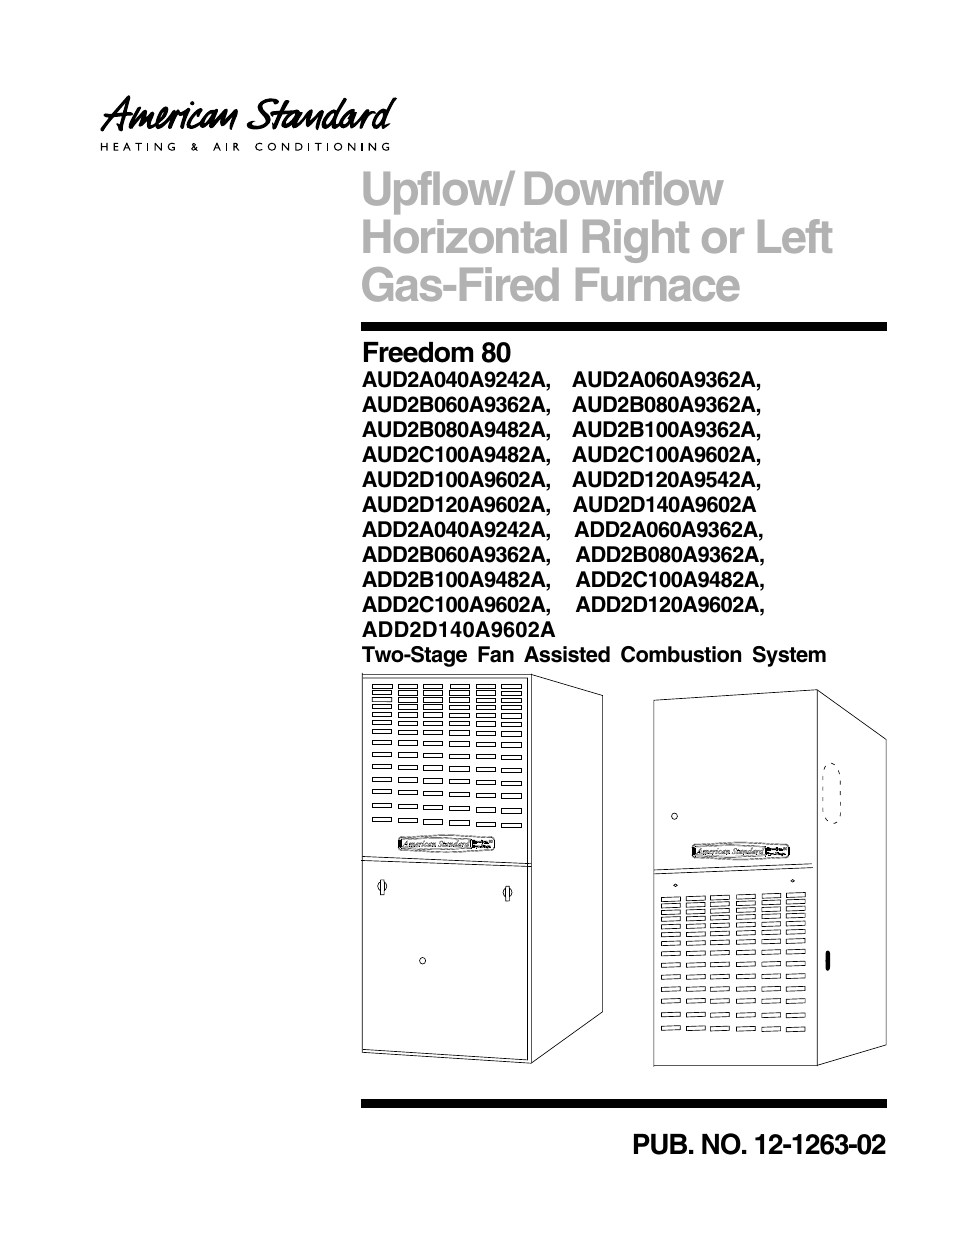 american standard freedom 80 page1 fan freedom 80 furnace wiring diagram gandul 45 77 79 119  at gsmx.co